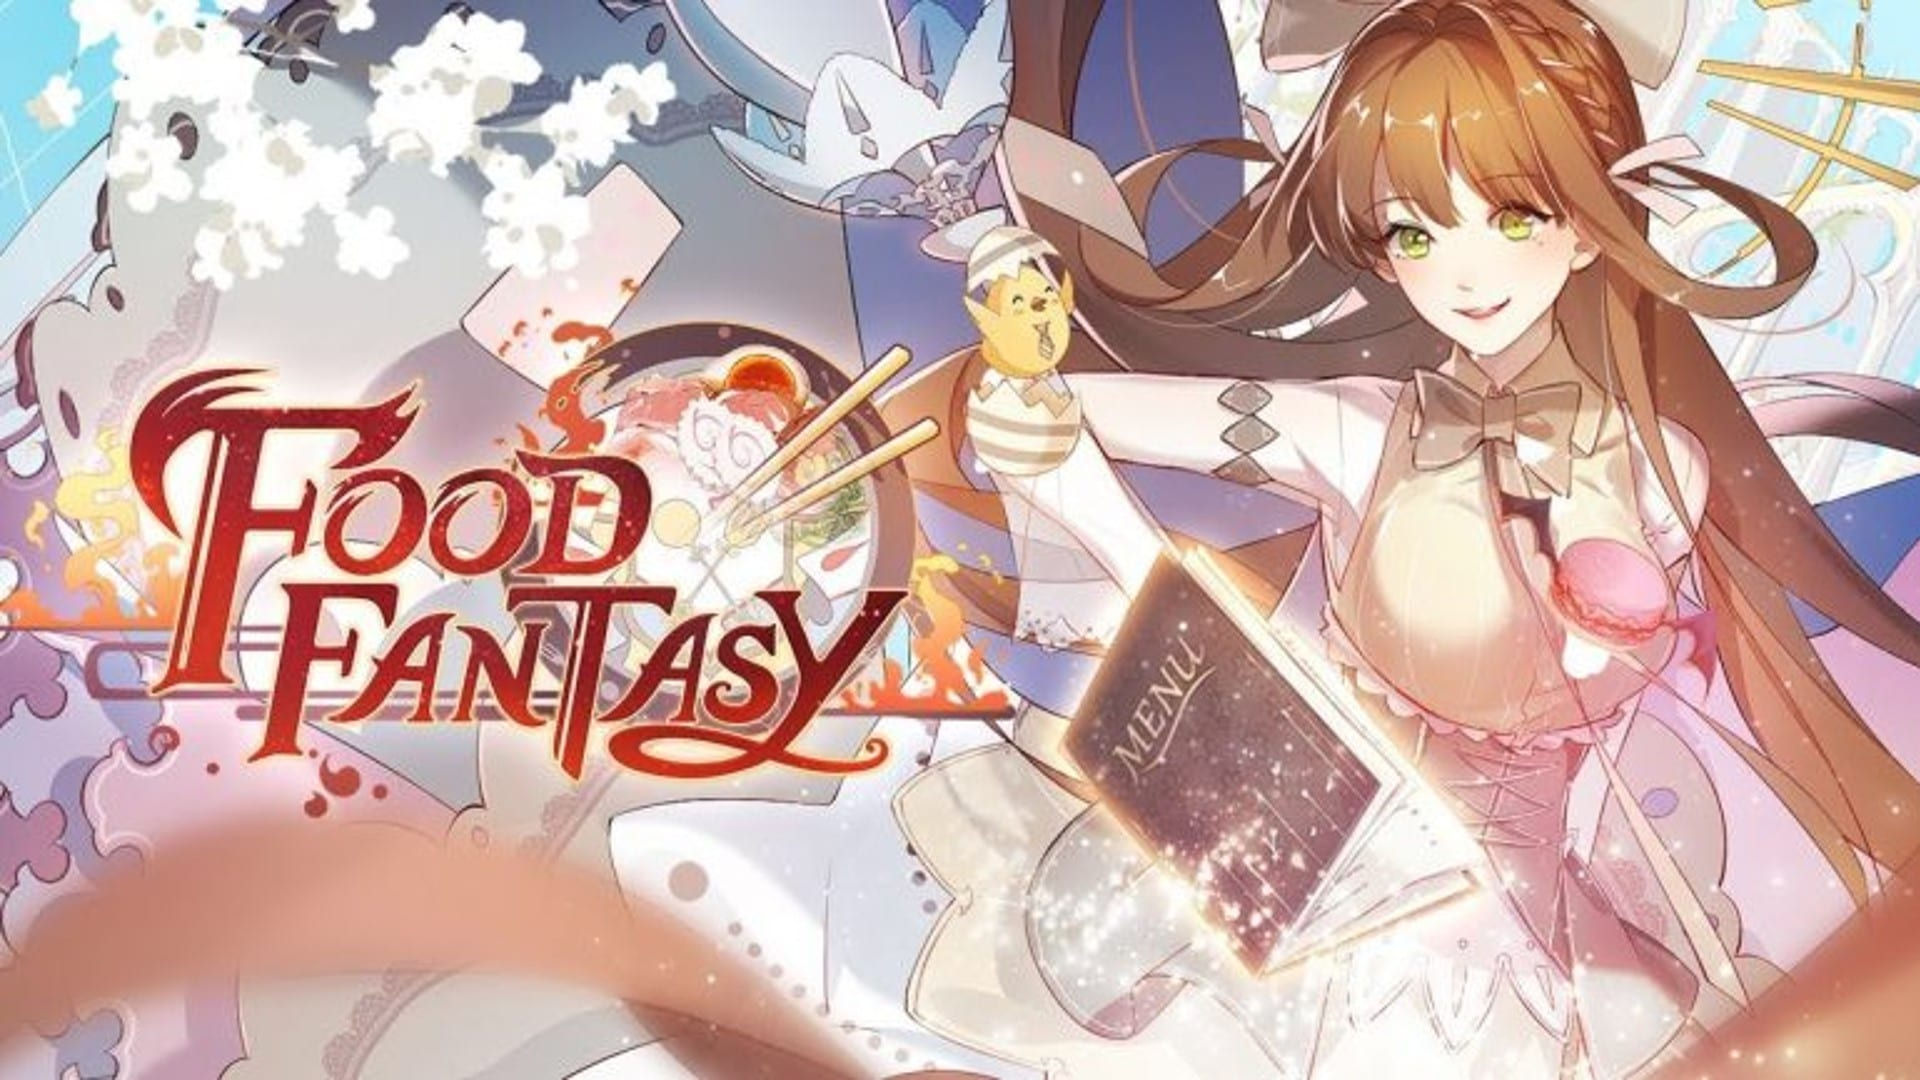 Food Fantasy - featured image